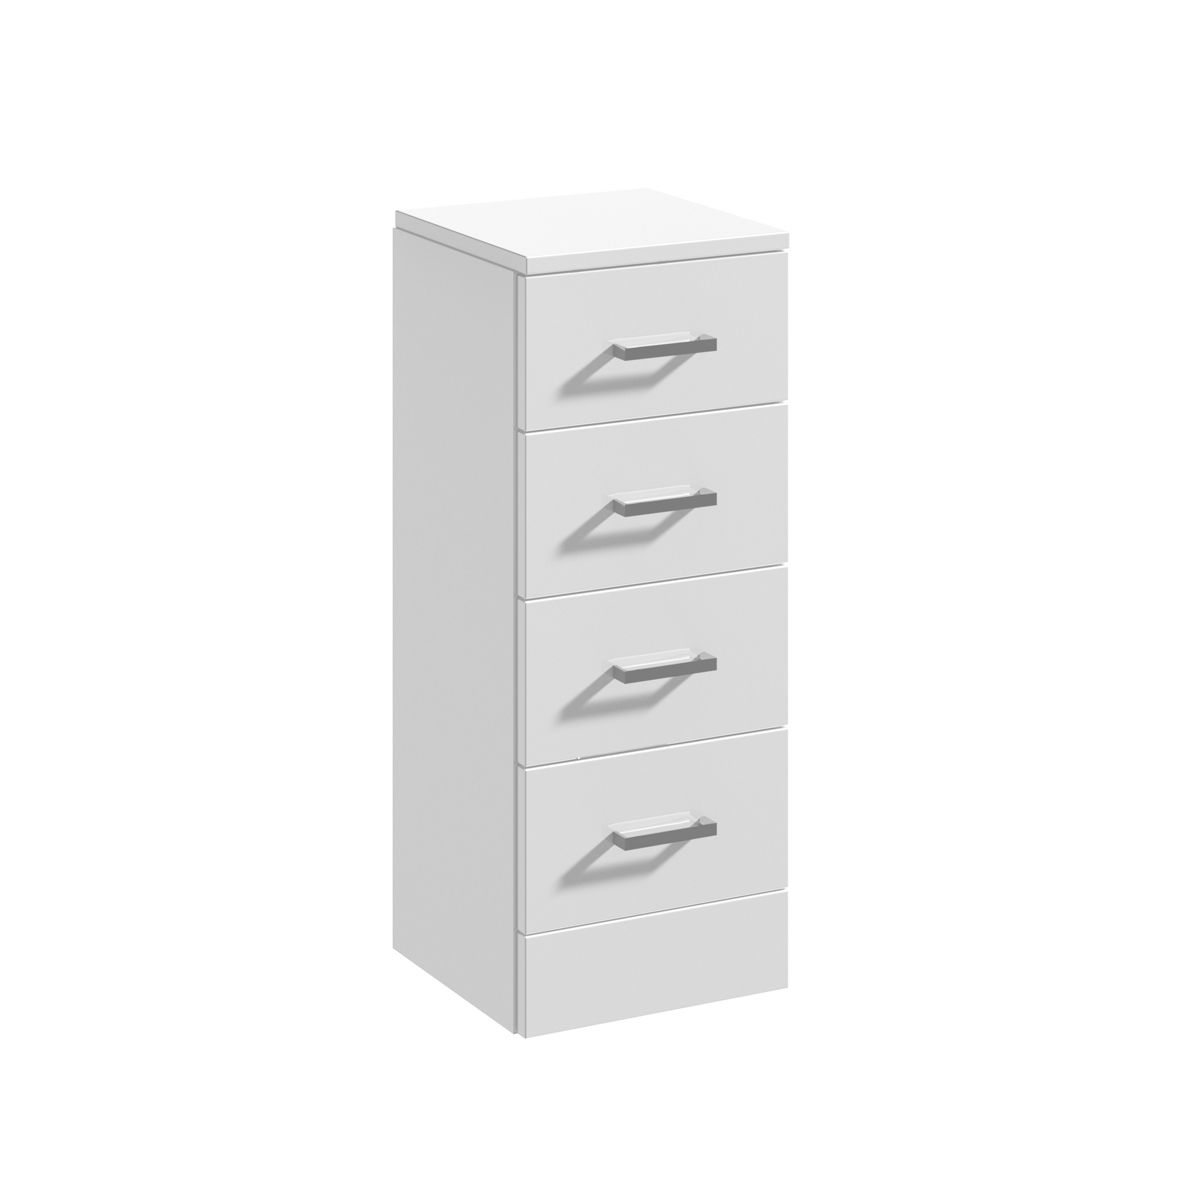 Nuie High Gloss White 4 Drawer Unit 300 x 300mm